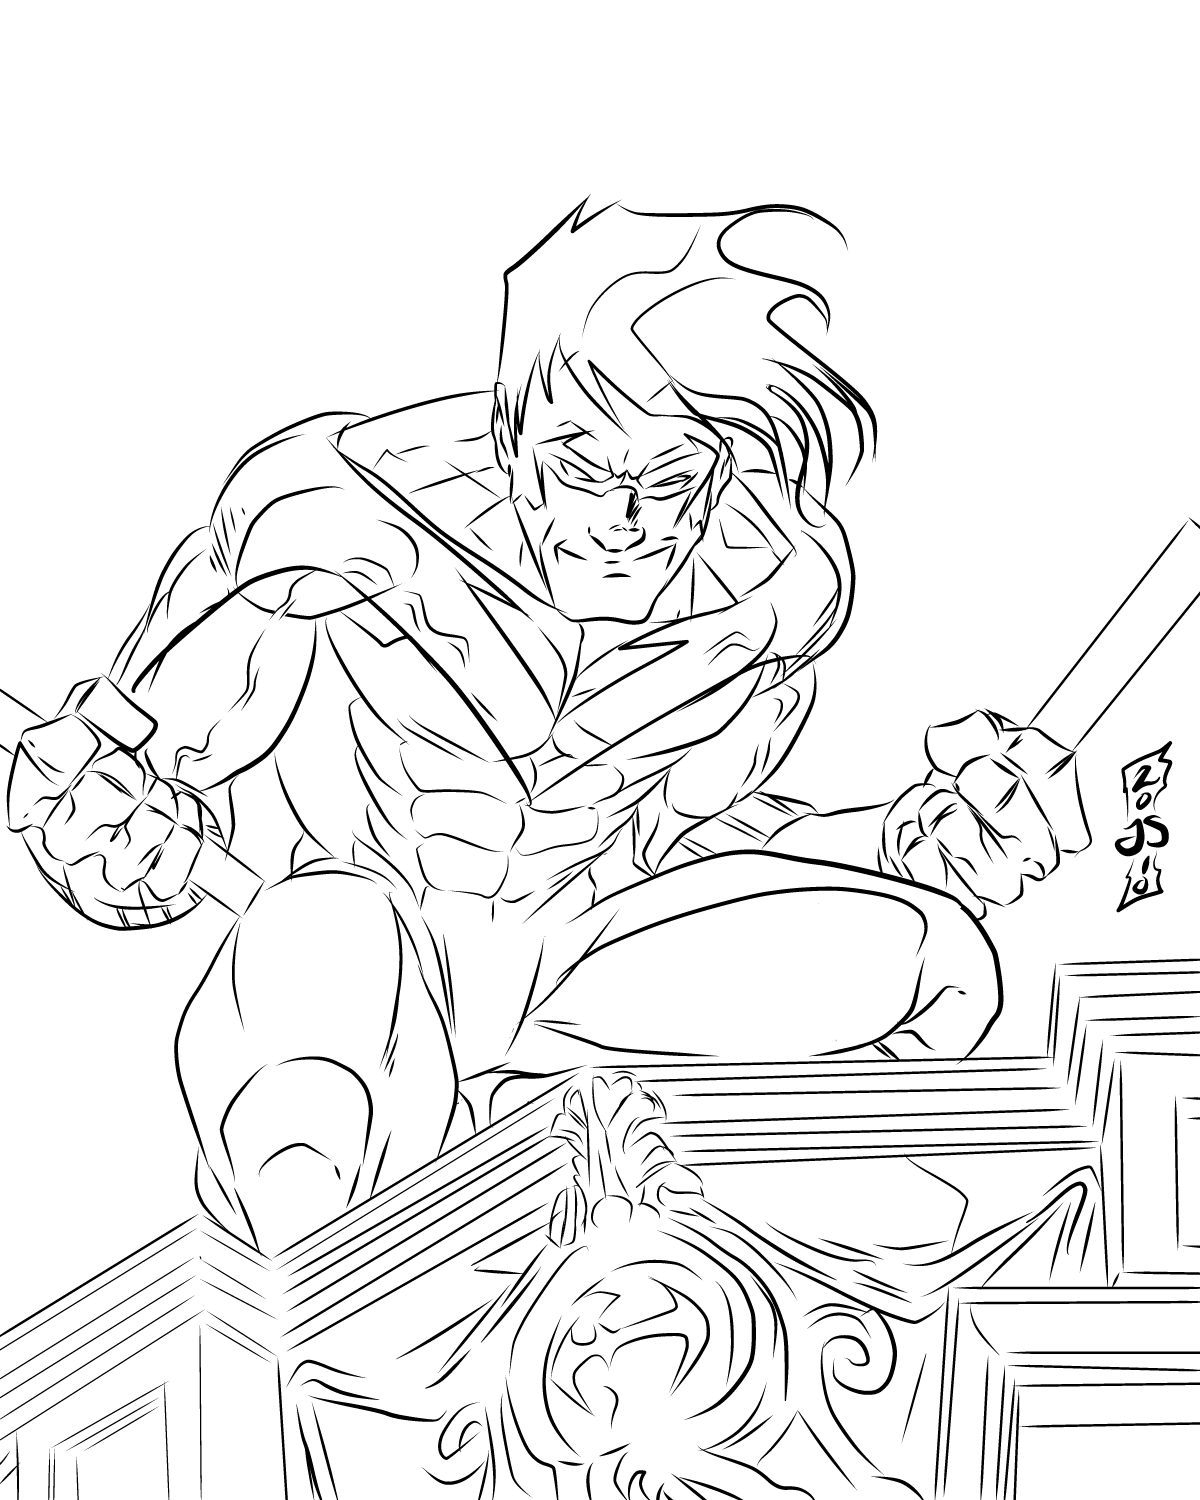 nightwing coloring page - Nightwing Coloring Pages